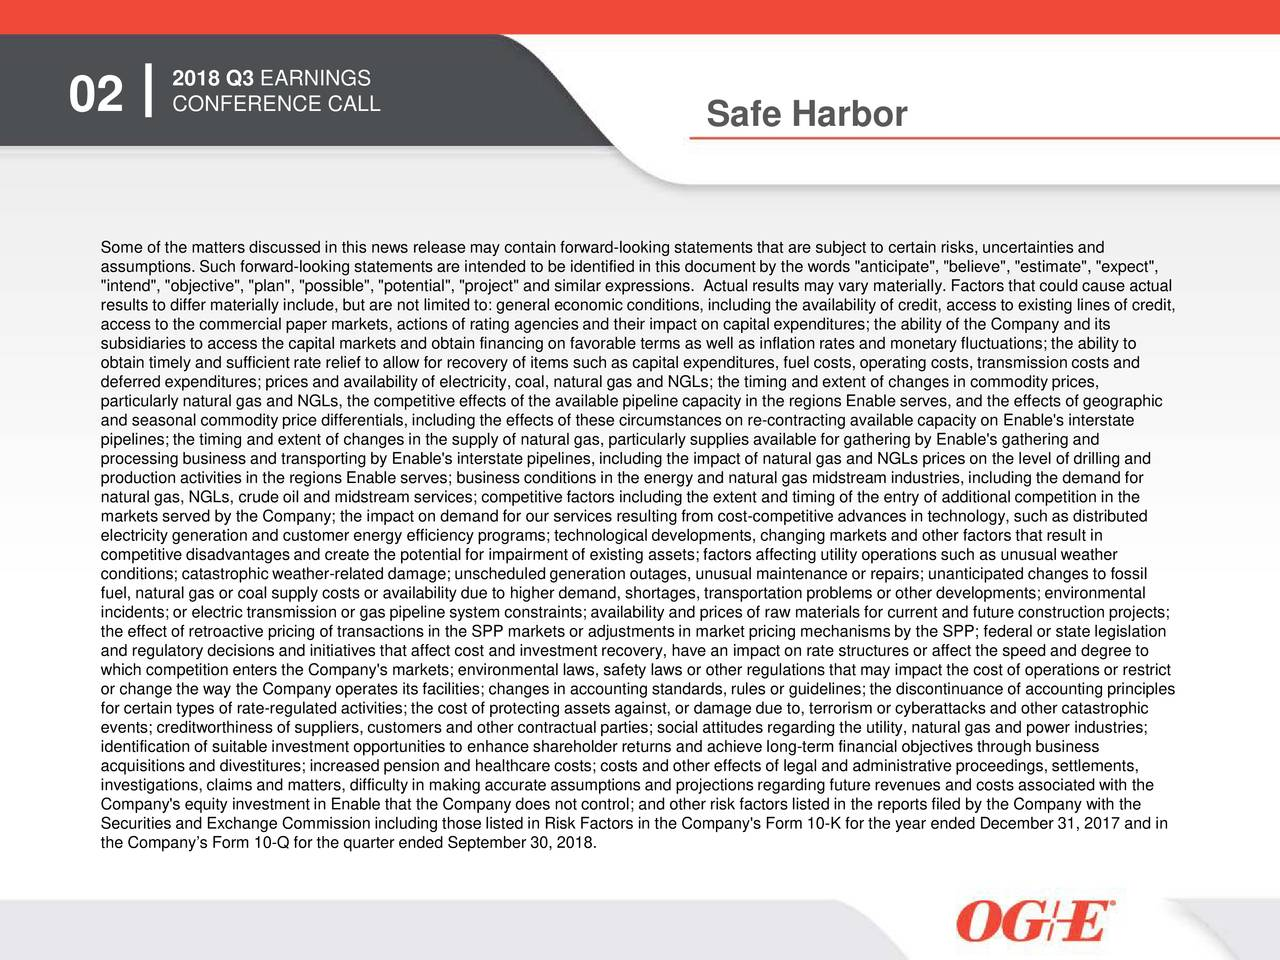 """02 CONFERENCE CALL Safe Harbor Some of the matters discussed in this news release may contain forward-looking statements that are subject to certain risks, uncertainties and assumptions. Such forward-looking statements are intended to be identified in this document by the words """"anticipate"""", """"believe"""", """"estimate"""", """"expect"""", """"intend"""", """"objective"""", """"plan"""", """"possible"""", """"potential"""", """"project"""" and similar expressions. Actual results may vary materially. Factors that could cause actual results to differ materially include, but are not limited to: general economic conditions, including the availability of credit,access to existing lines of credit, access to the commercial paper markets, actions of rating agencies and their impact on capital expenditures; the ability of the Company and its subsidiaries to access the capital markets and obtain financing on favorable terms as well as inflation rates and monetary fluctuations; the ability to obtain timely and sufficient rate relief to allow for recovery of items such as capital expenditures, fuel costs, operating costs, transmission costs and deferred expenditures; prices and availability of electricity, coal, natural gas and NGLs; the timing and extent of changes in commodity prices, particularly natural gas and NGLs, the competitive effects of the available pipeline capacity in the regions Enable serves, and the effects of geographic and seasonal commodity price differentials, including the effects of these circumstances on re-contracting available capacity onEnable's interstate pipelines; the timing and extent of changes in the supply of natural gas, particularly supplies available for gathering by Enable's gathering and processing business and transporting by Enable's interstate pipelines, including the impact of natural gas and NGLs prices on the level of drilling and production activities in the regions Enable serves; business conditions in the energy and natural gas midstream industries, including the demand for natural"""